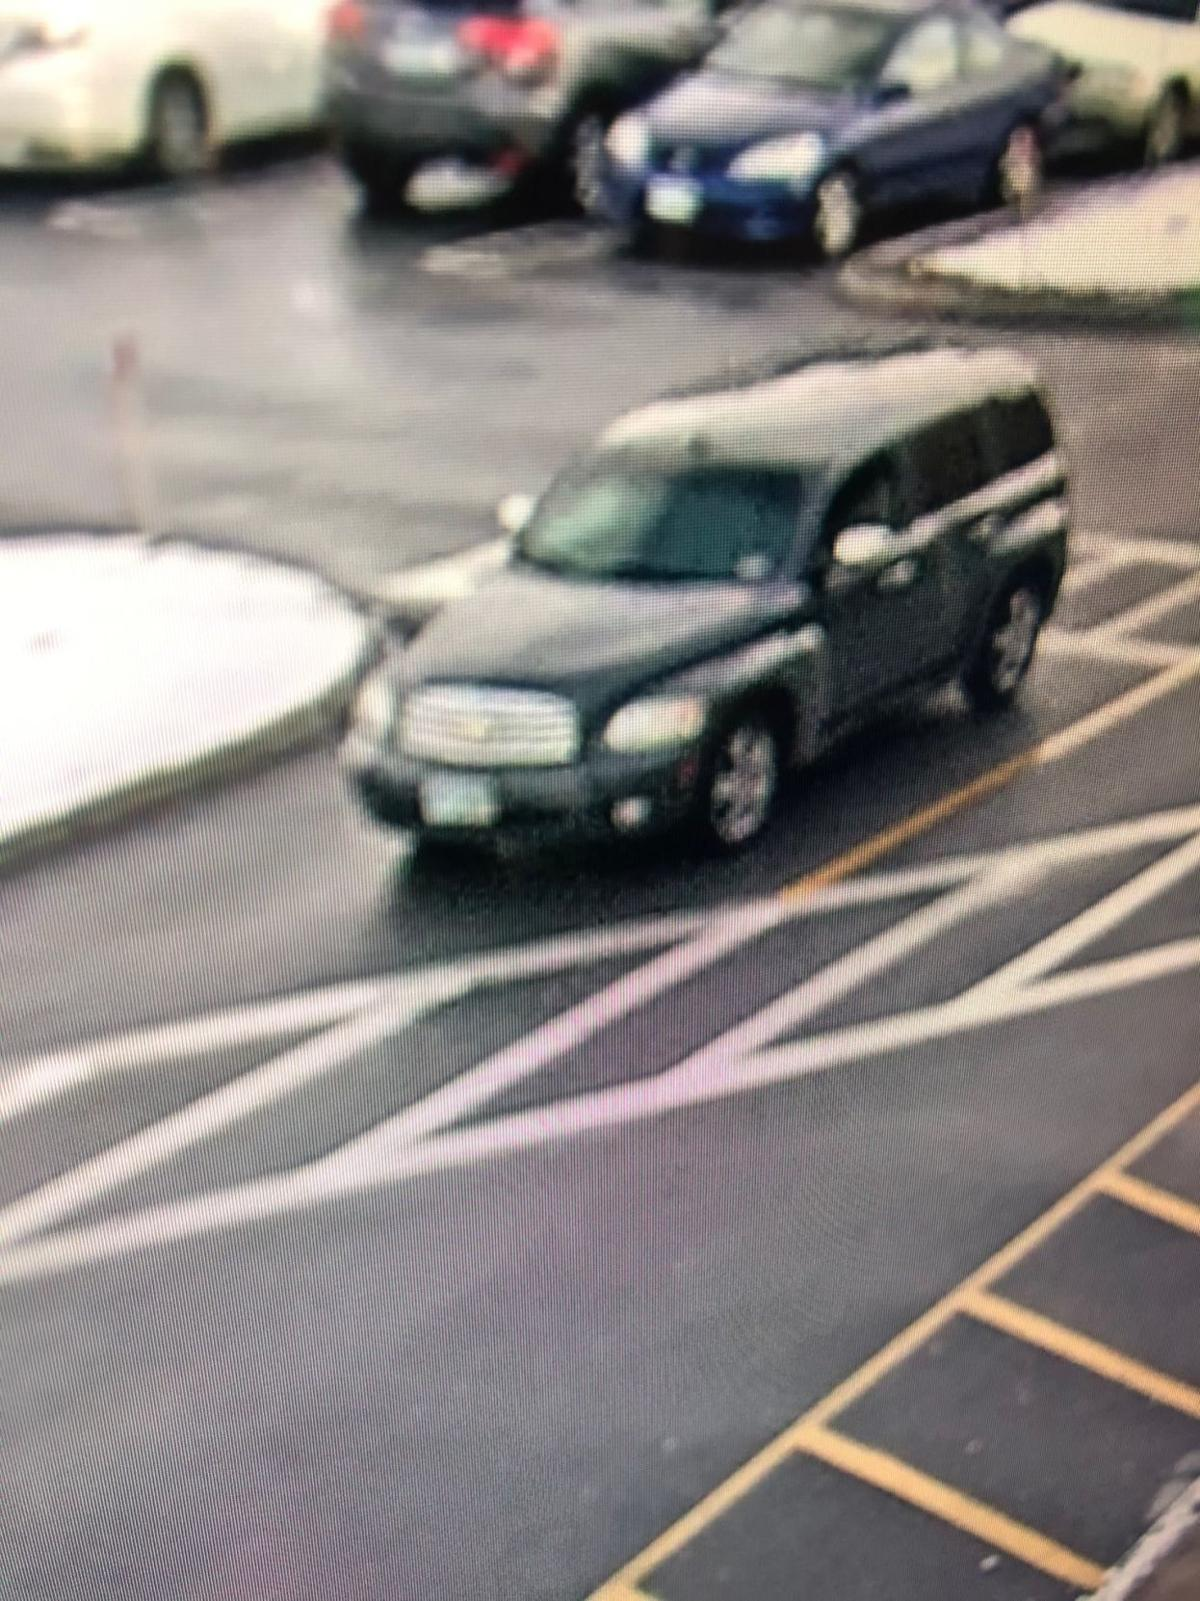 Car involved in Best Buy theft